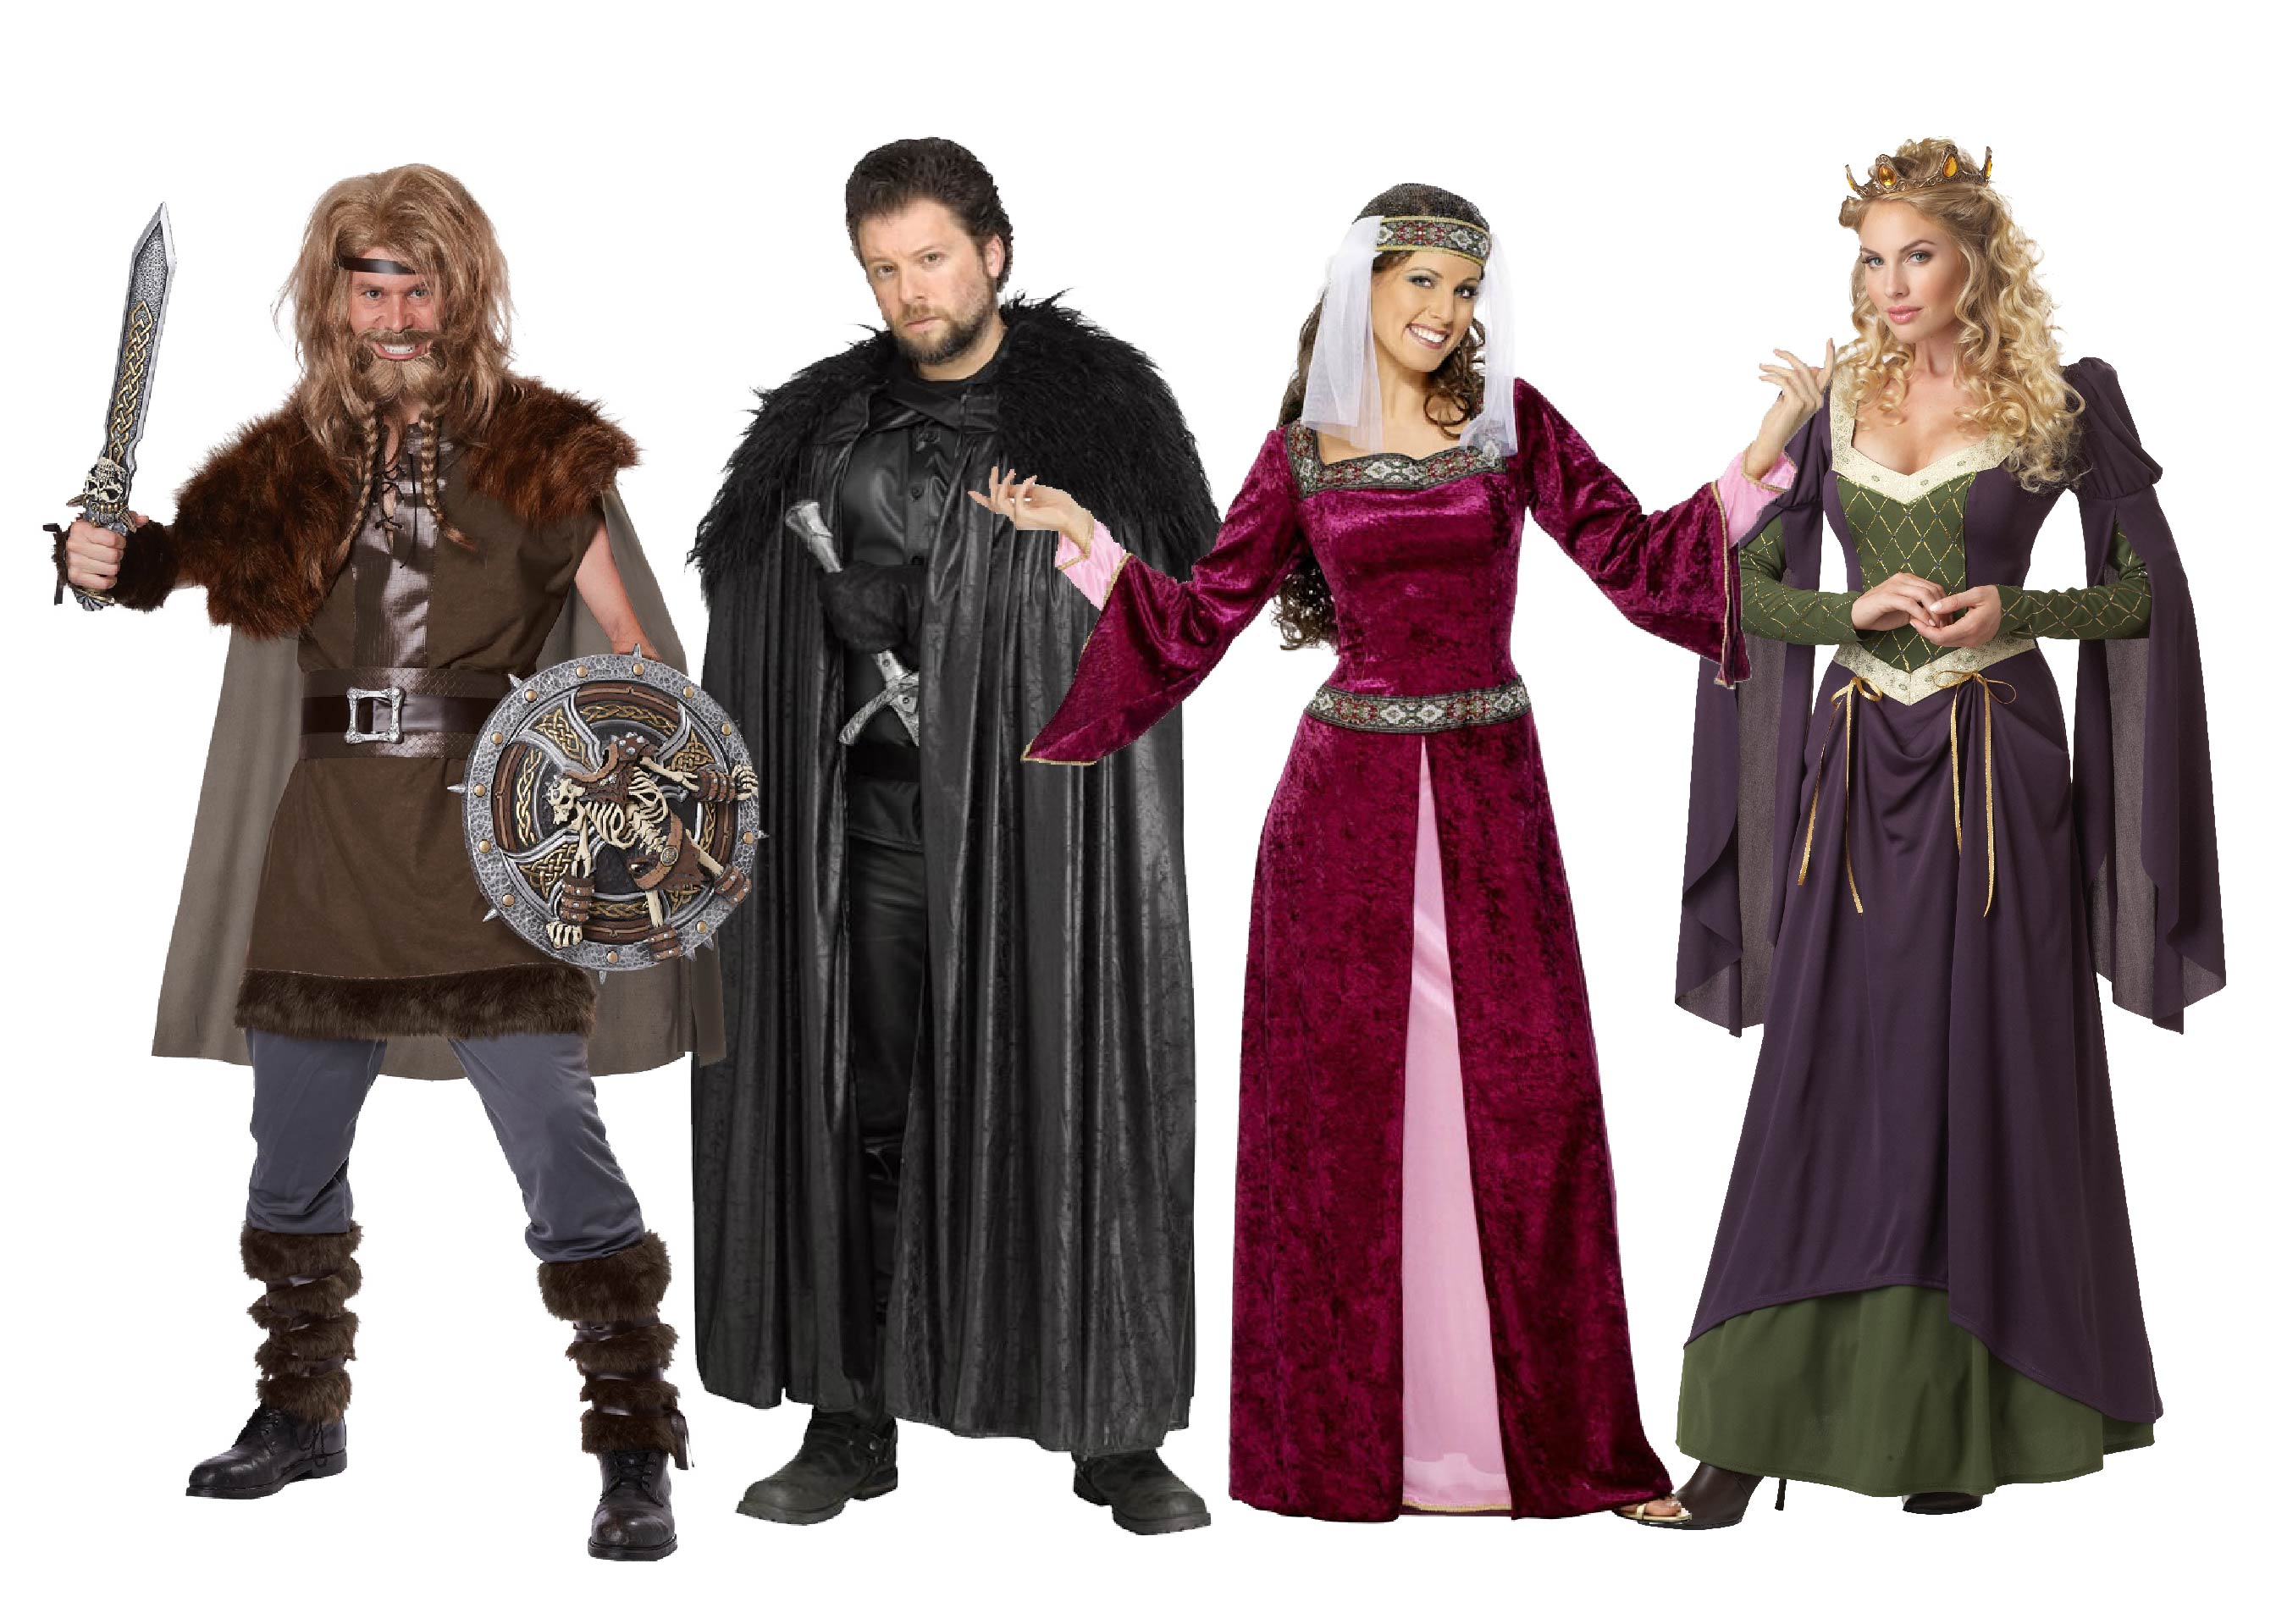 Group of people wearing Game of Thrones costumes.